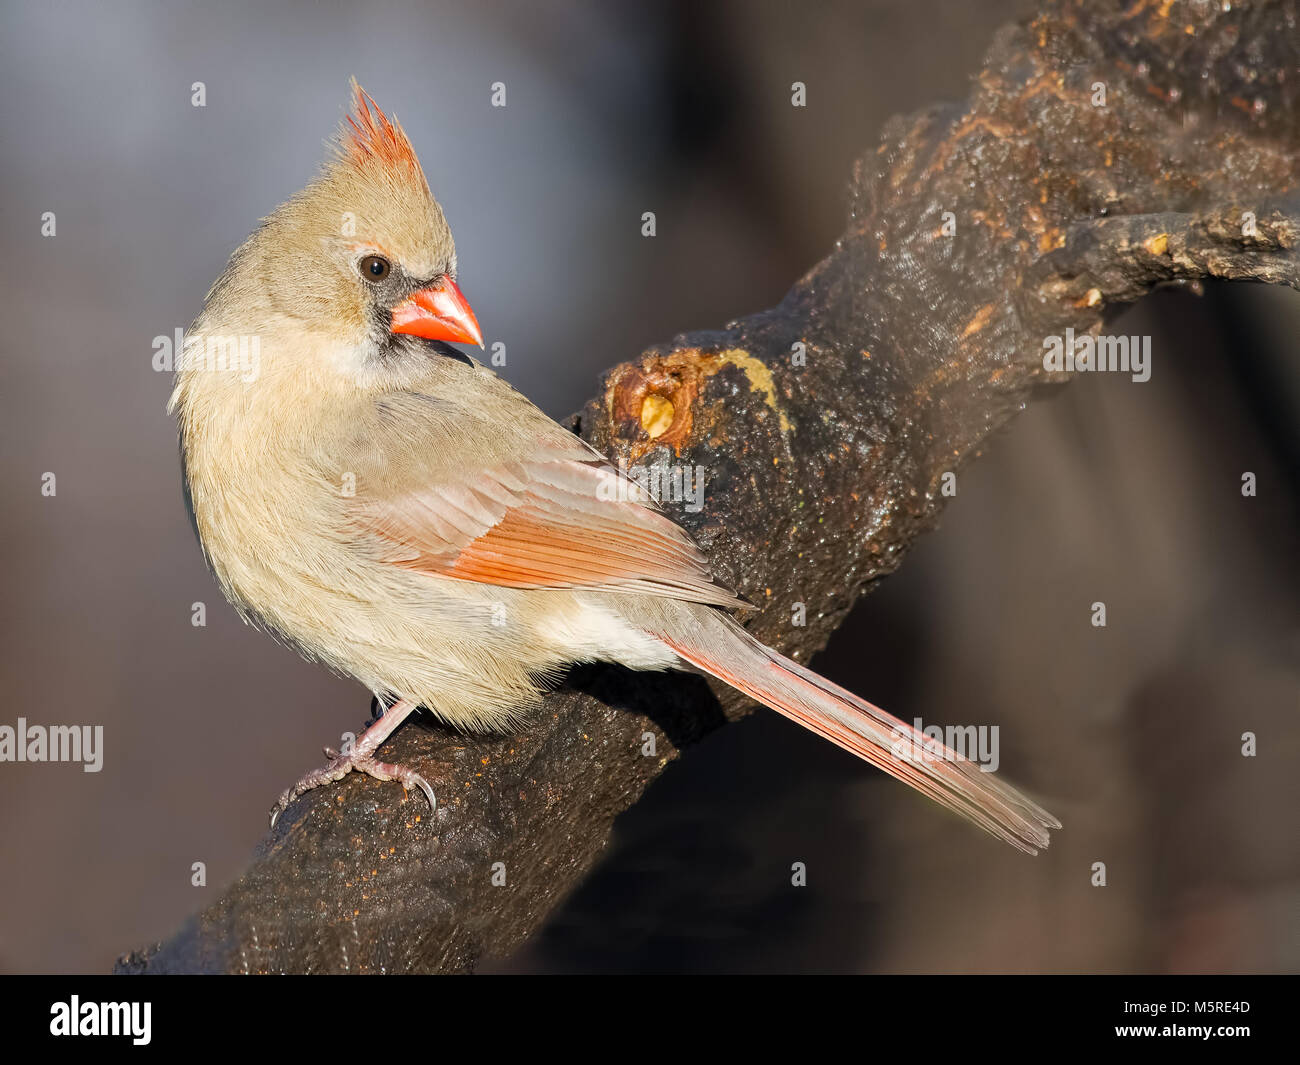 Female Northern Cardinal - Stock Image